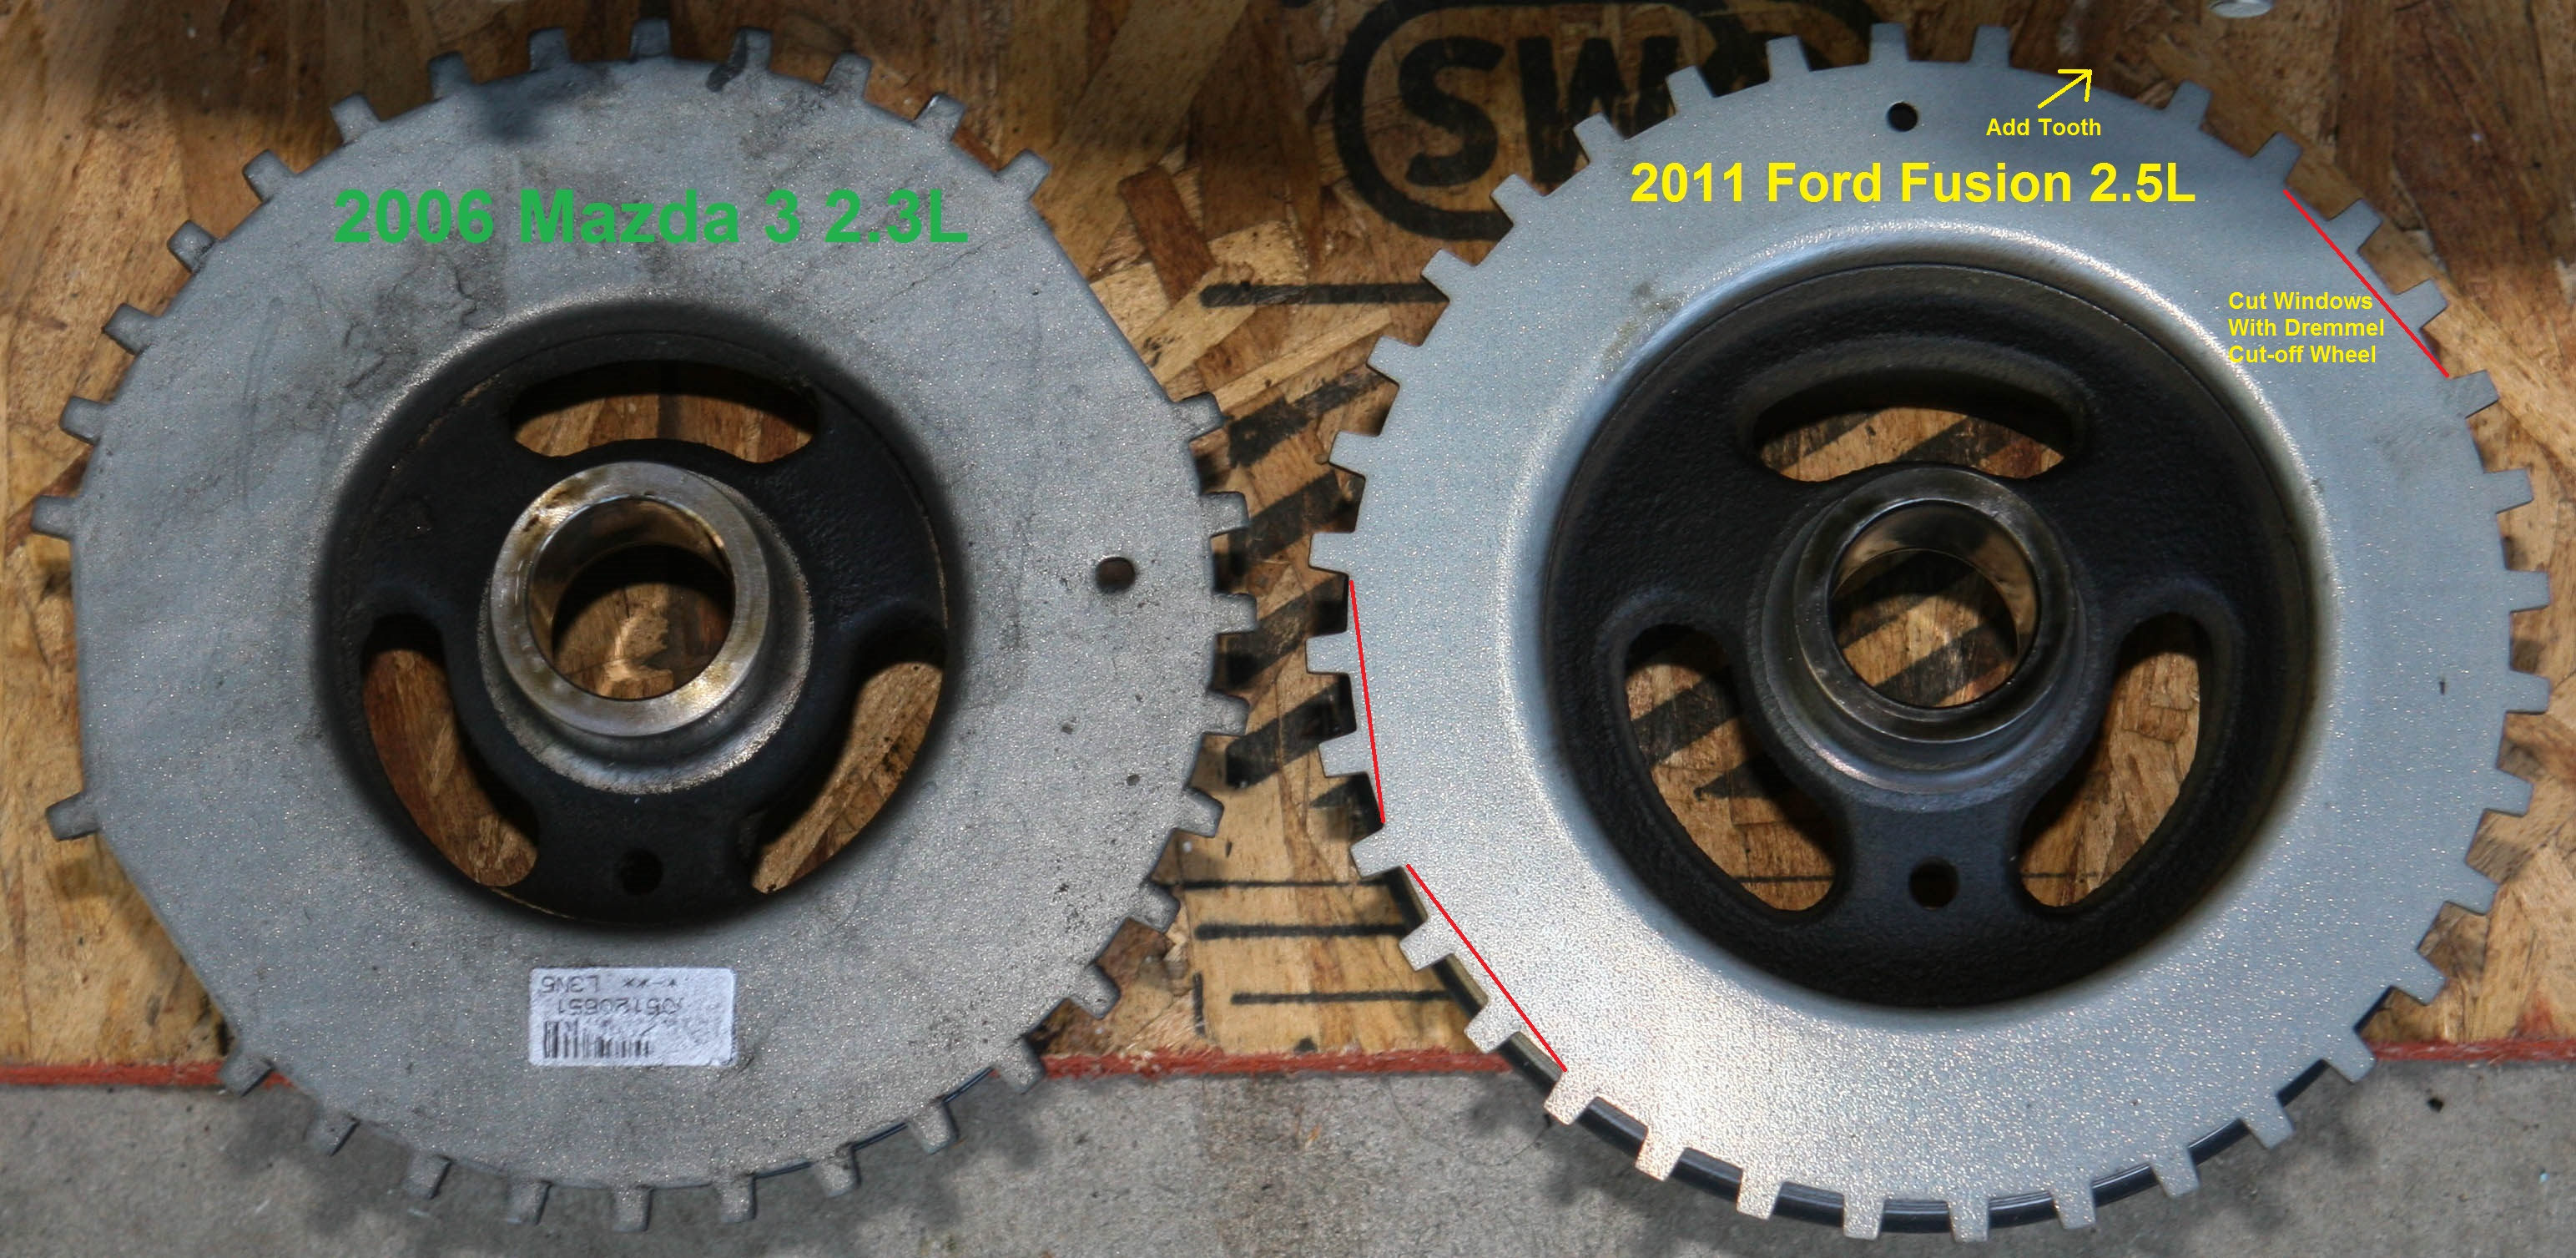 2006 Mazda Mazda3 Crank Pulley Removal additionally Fan Motor F 150 also Watch in addition Mazda 2 0 Skyactiv Pe Engine Parts Details Here 221919 further 2015 Mustang Performance Parts Specs. on 2004 mazda 3 engine diagram